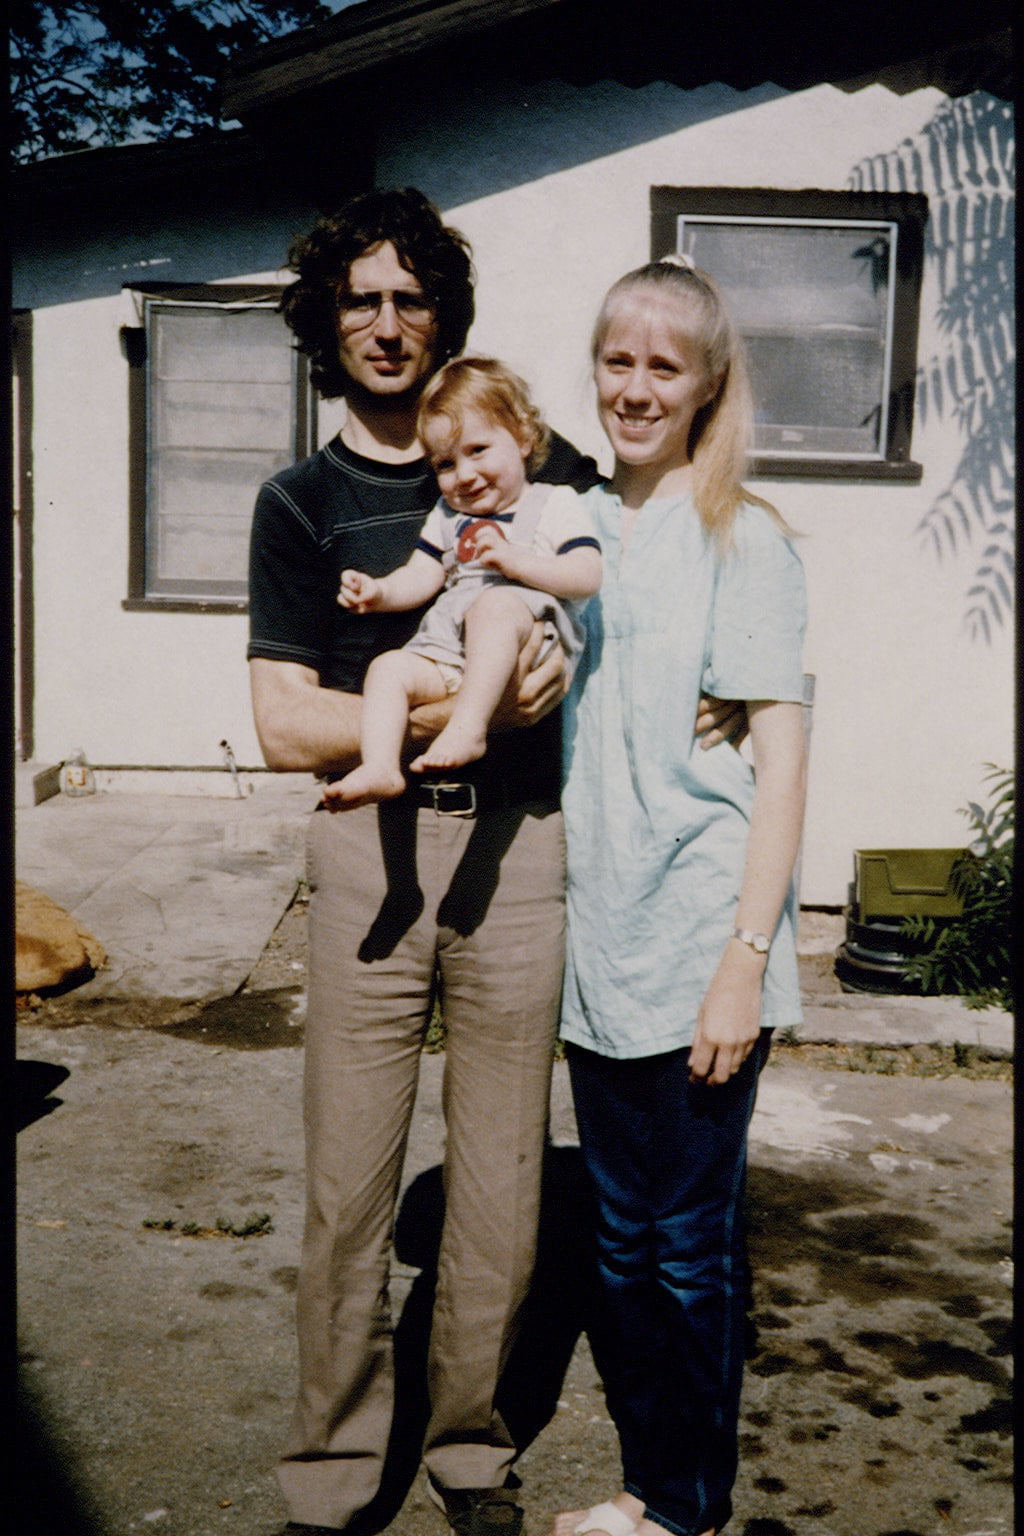 Vernon Wayne Howell, known as David Koresh, his wife Rachel, and their son Cyrus in front of their house.  (Photo by Elizabeth Baranyai/Sygma via Getty Images)